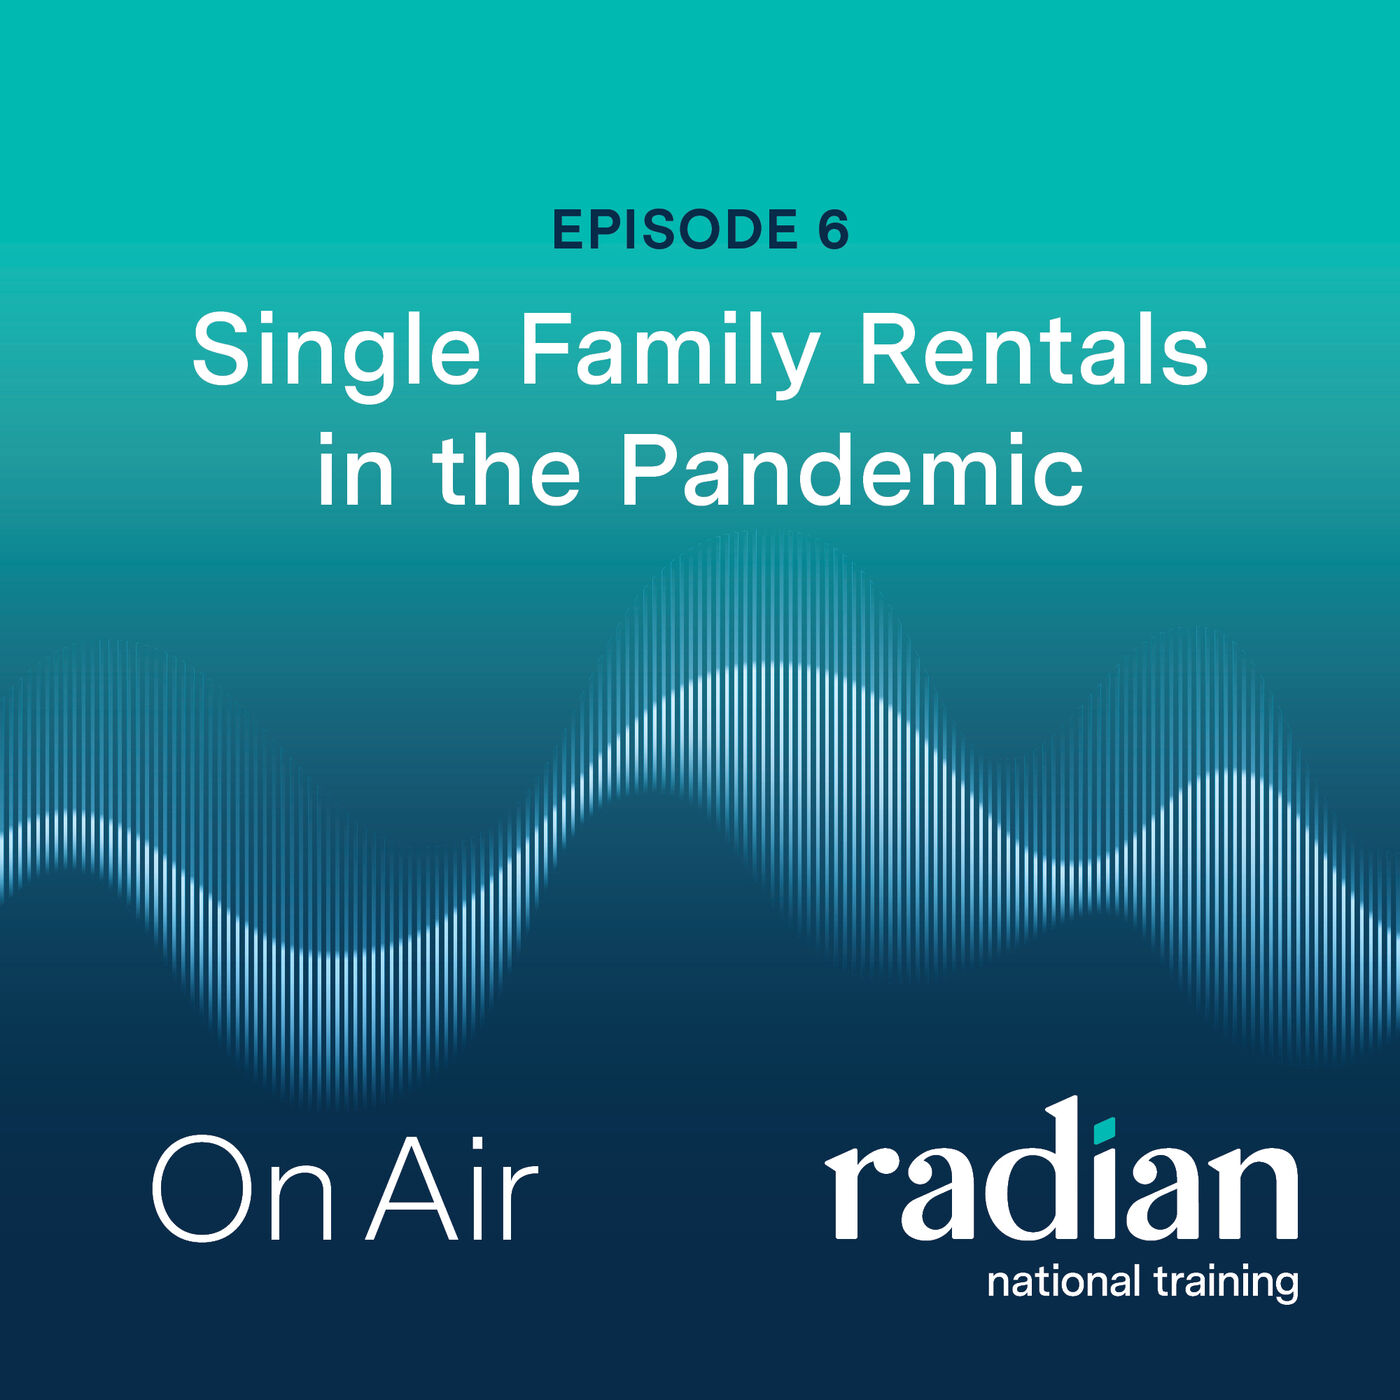 Single Family Rentals in the Pandemic